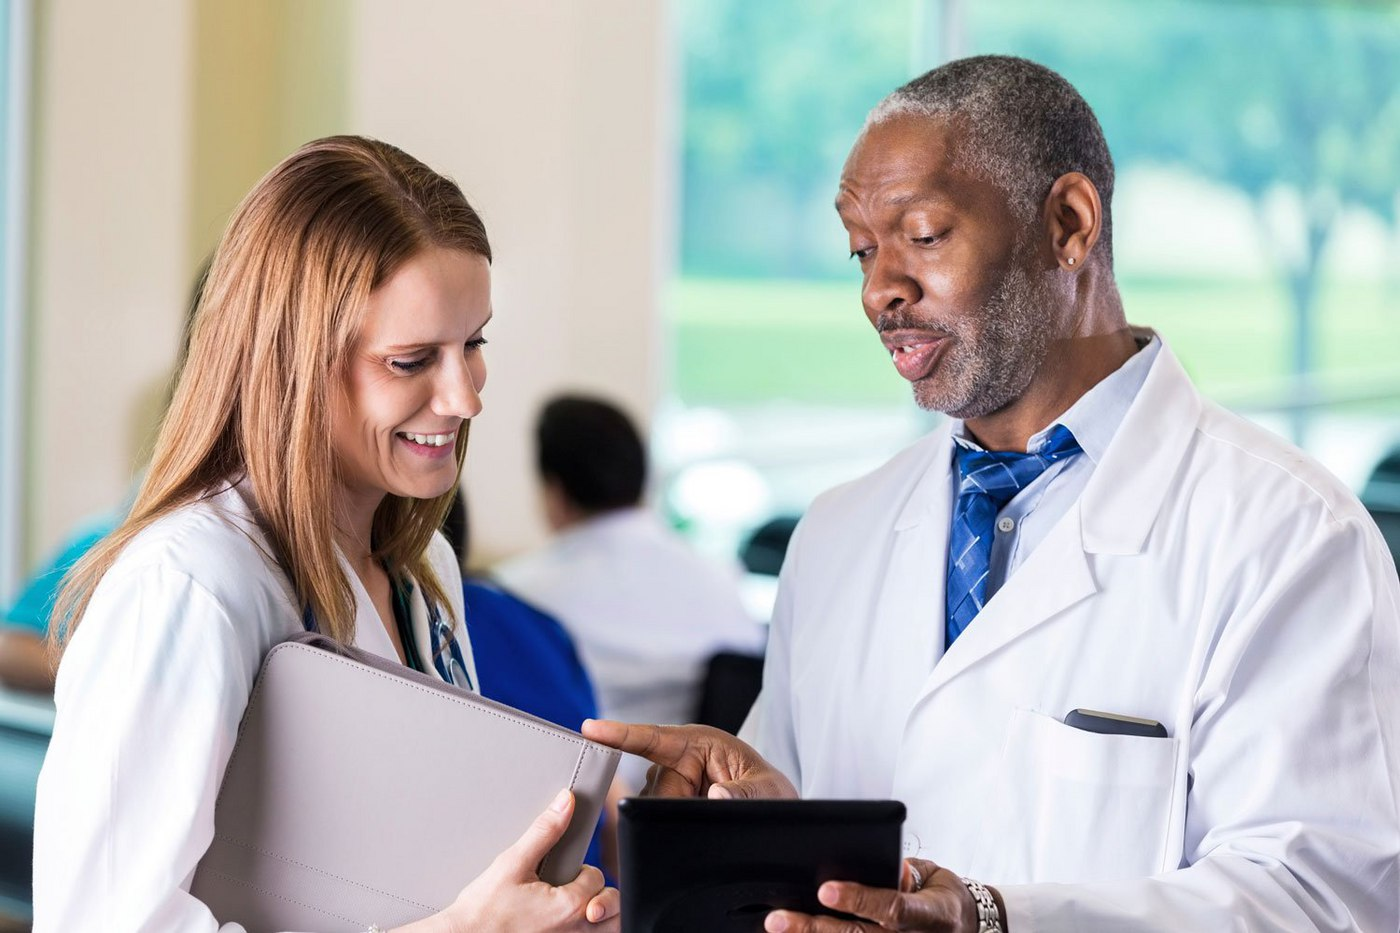 Small Practices Expect Penalties Under Proposed MACRA Rule